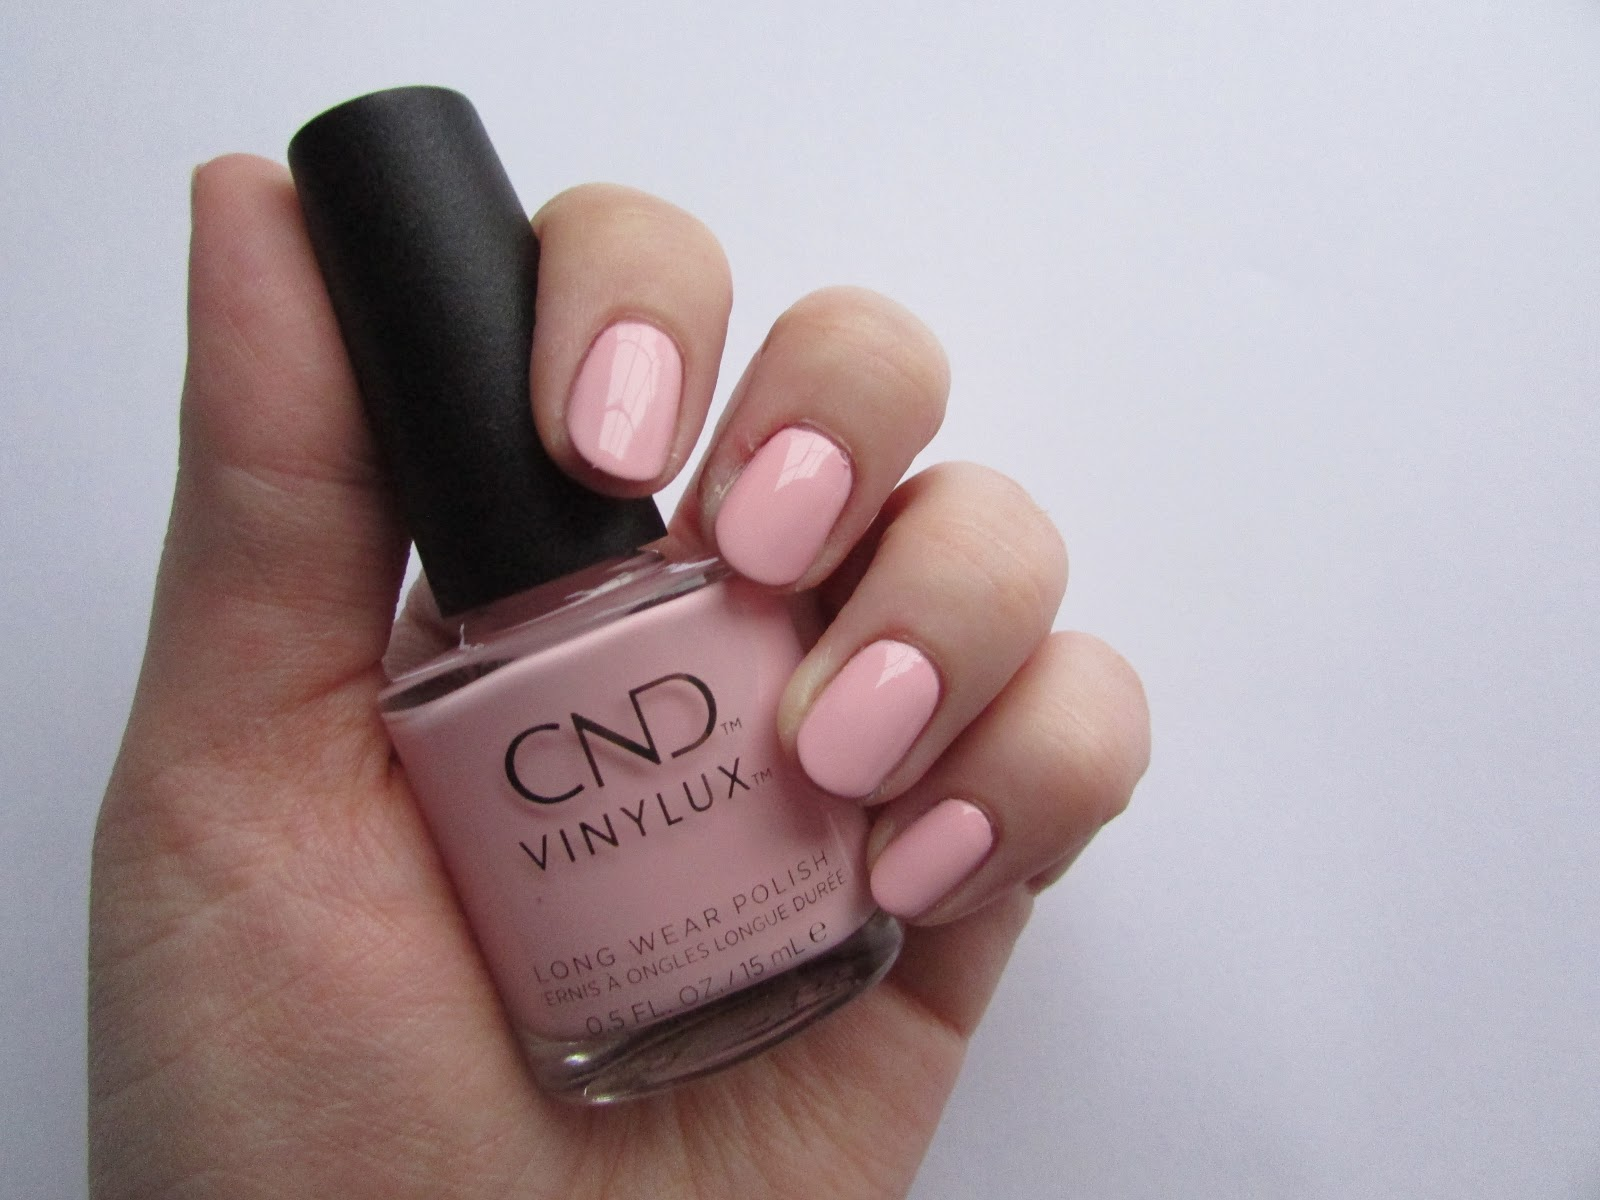 CND VINYLUX CHIC SHOCK COLLECTION | Lipstick And Louboutins Blog